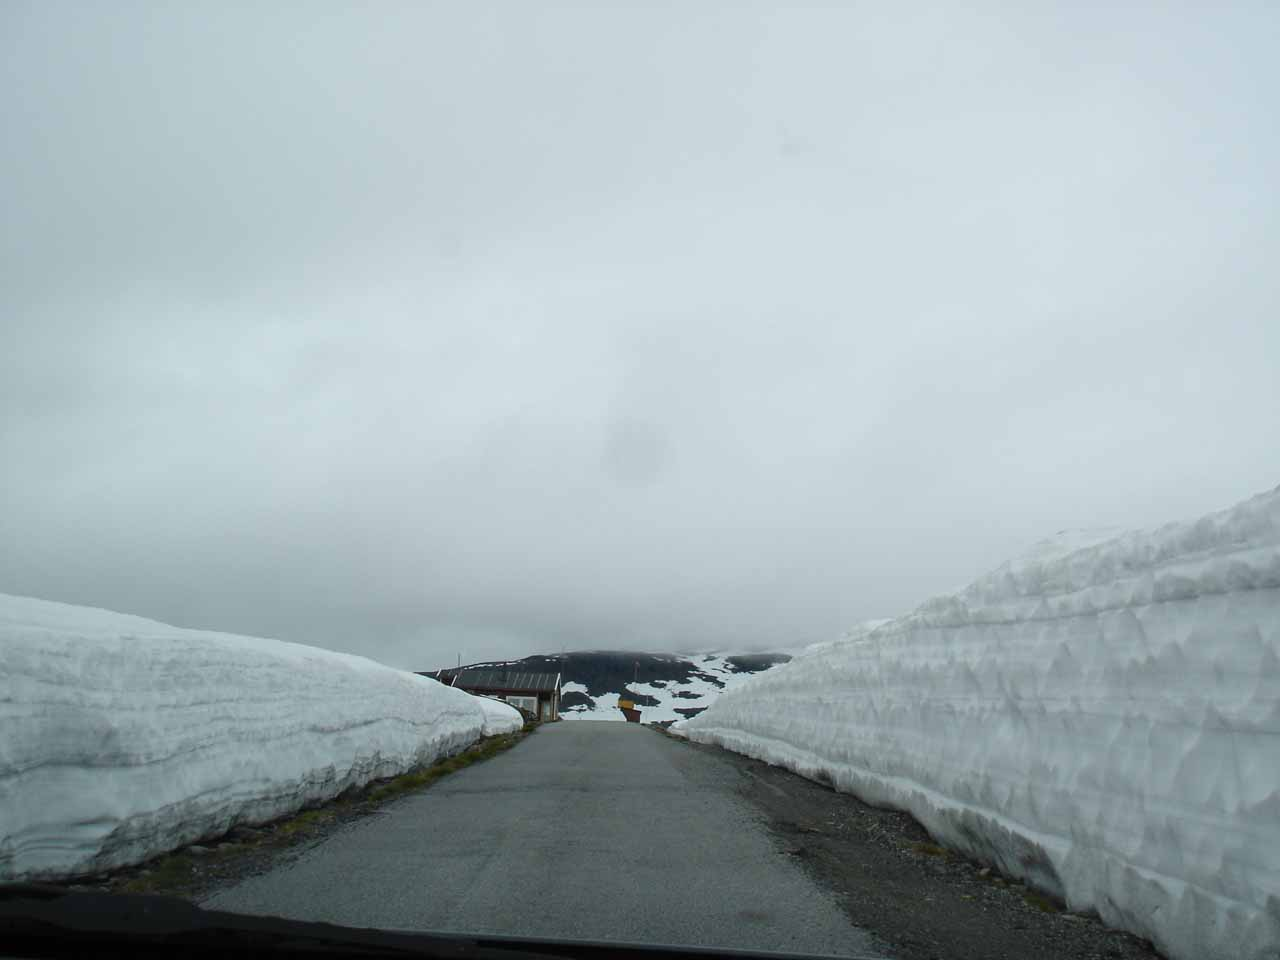 Driving between a short wall of snow while the clouds seemed to be very low overhead